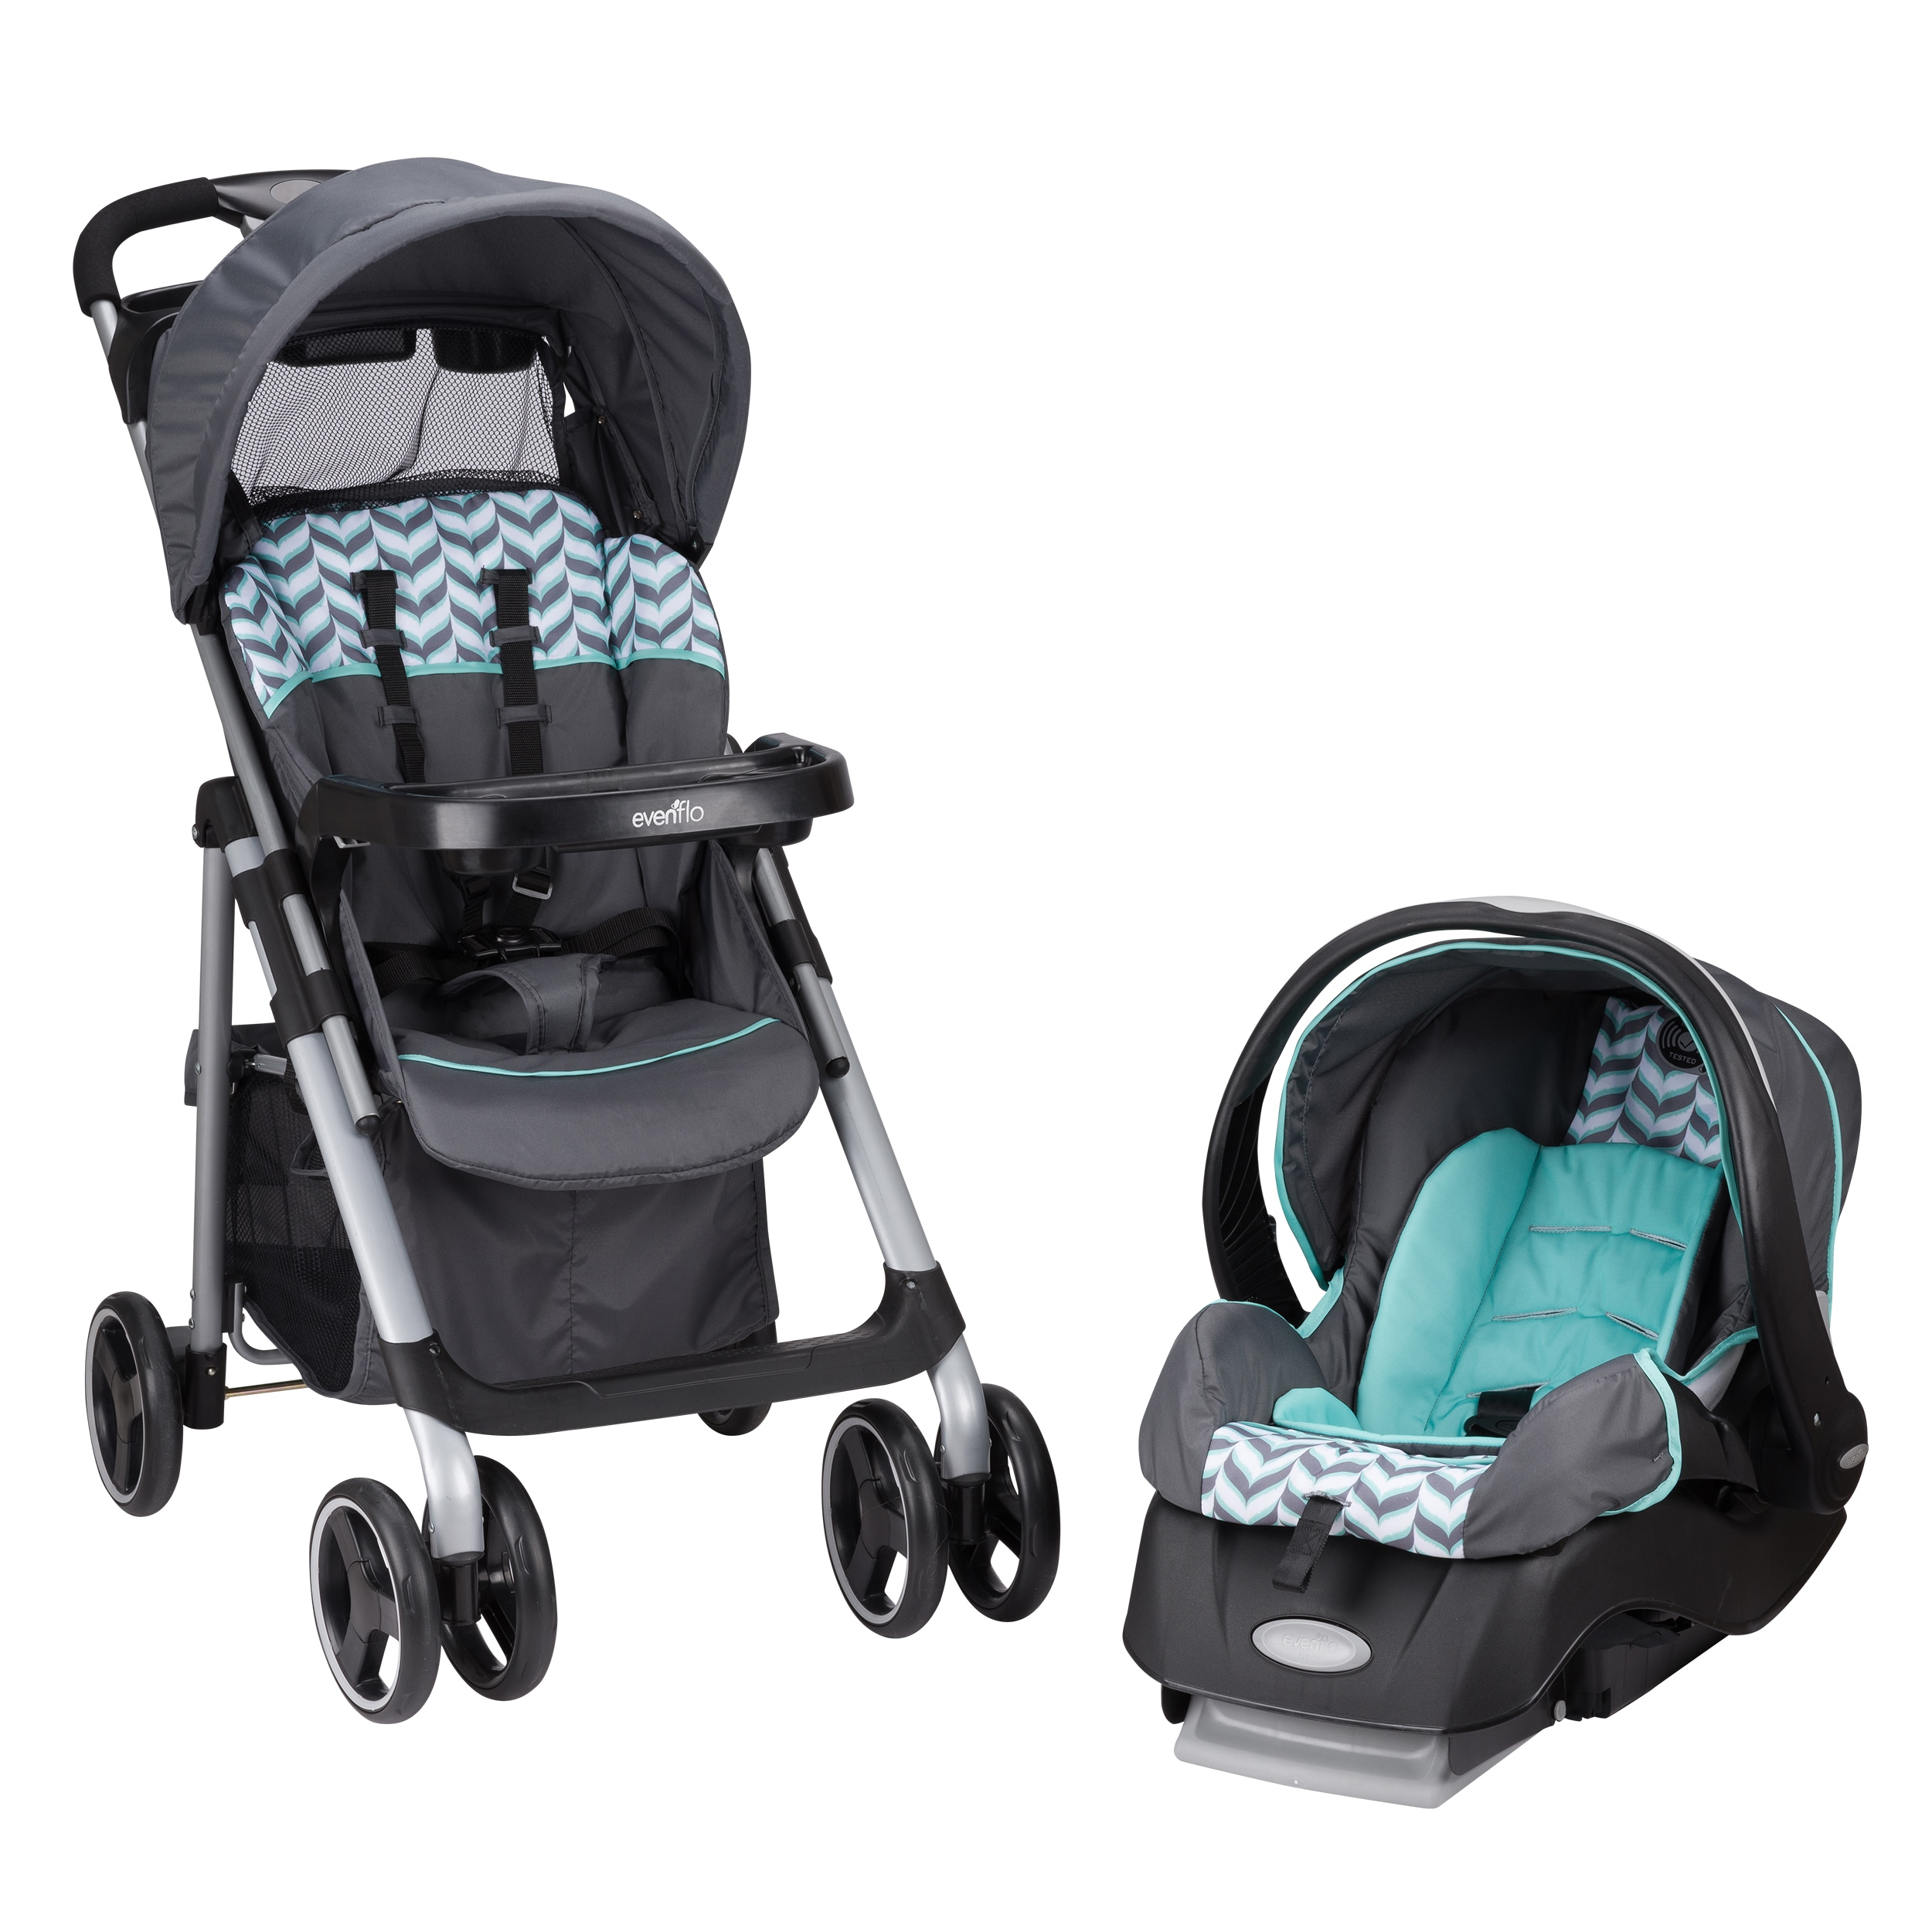 Evenflo Vive Travel System with Embrace in Spearmint Spre...